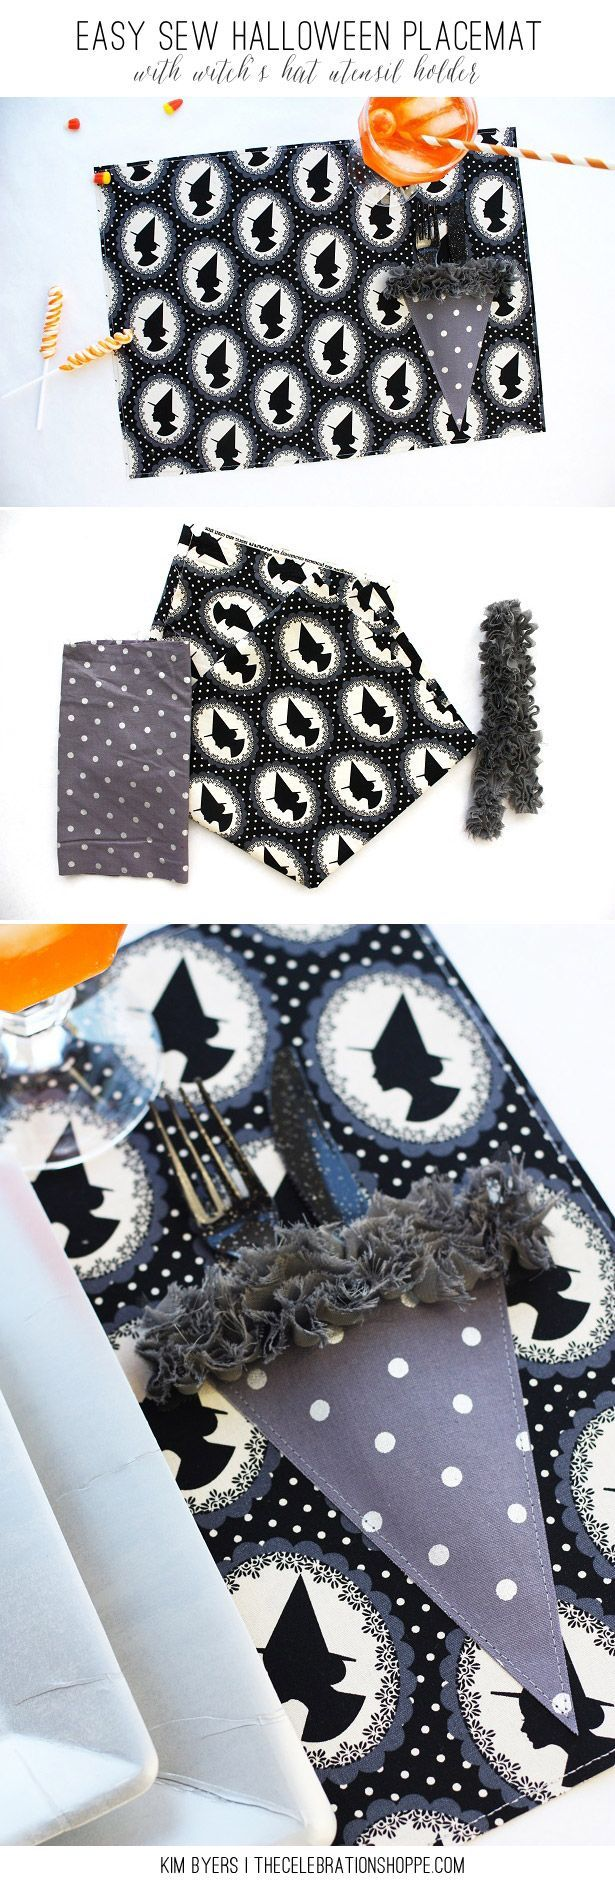 Easy Sew Halloween Placemat with Witch's Hat Utensil Holder | Kim Byers, http://TheCelebrationShoppe.com